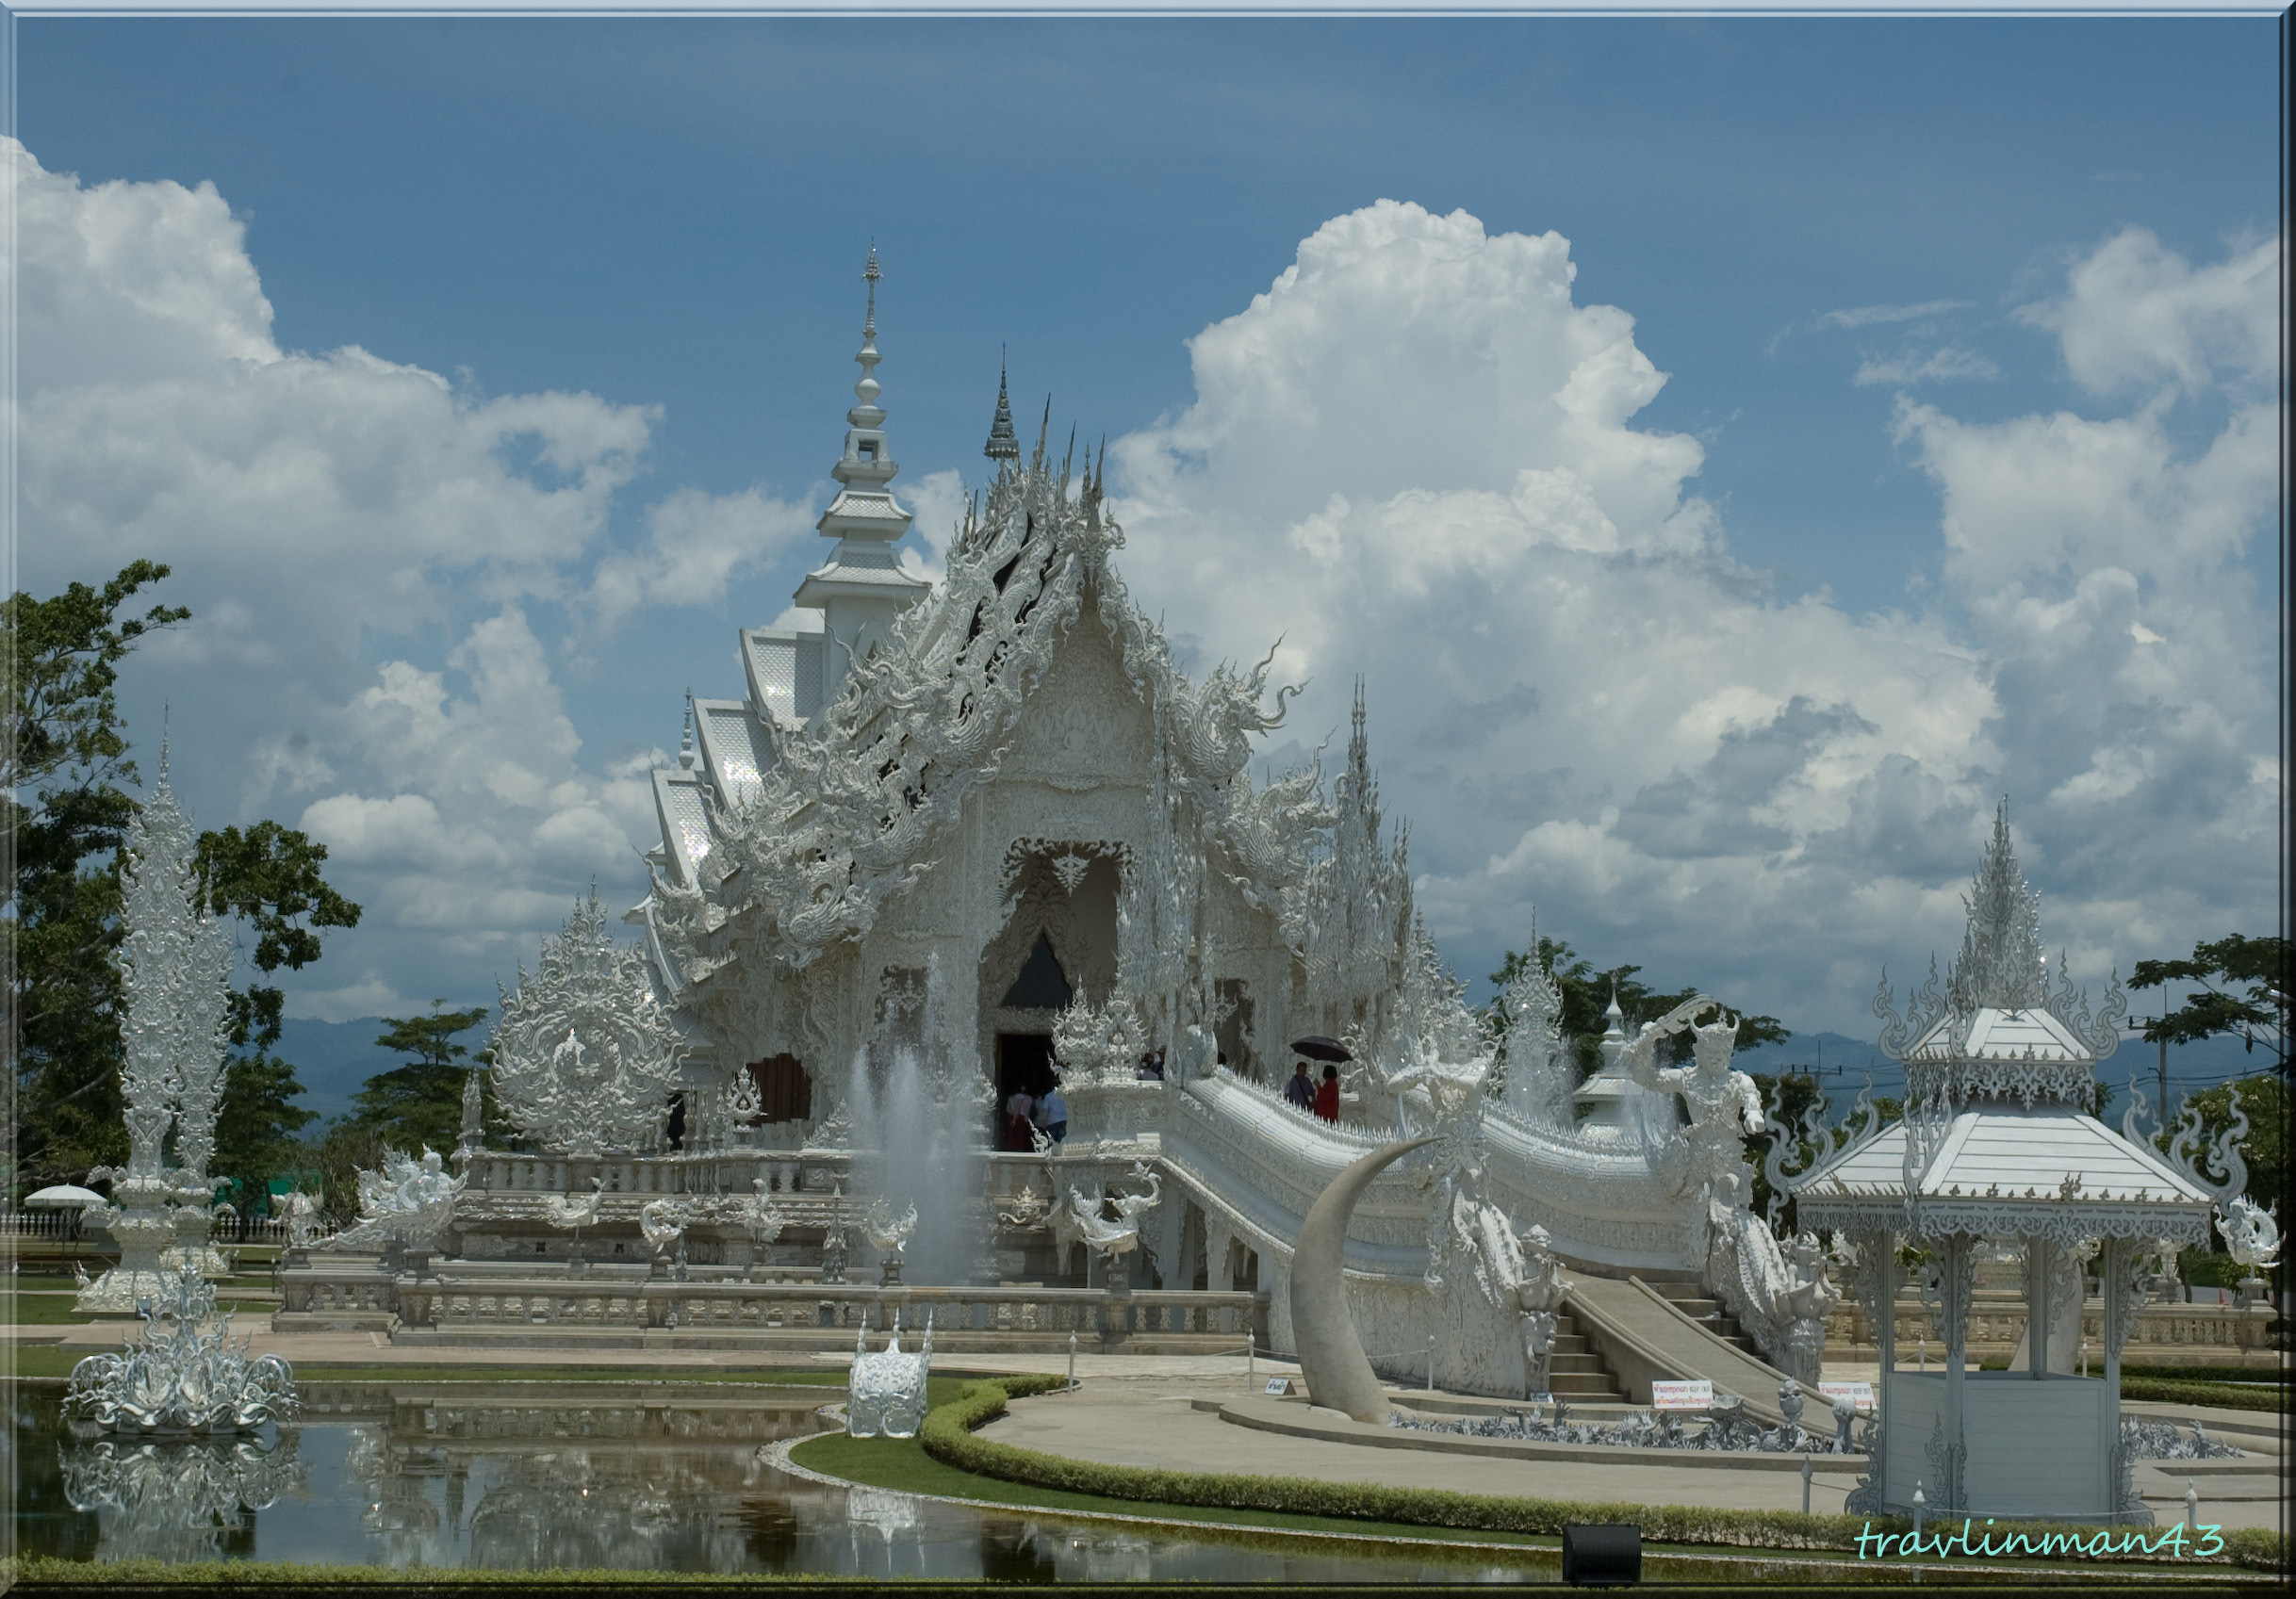 File:The White Temple, Wat Rong Khun, Chiang Rai, Thailand.jpg - Wikipedia